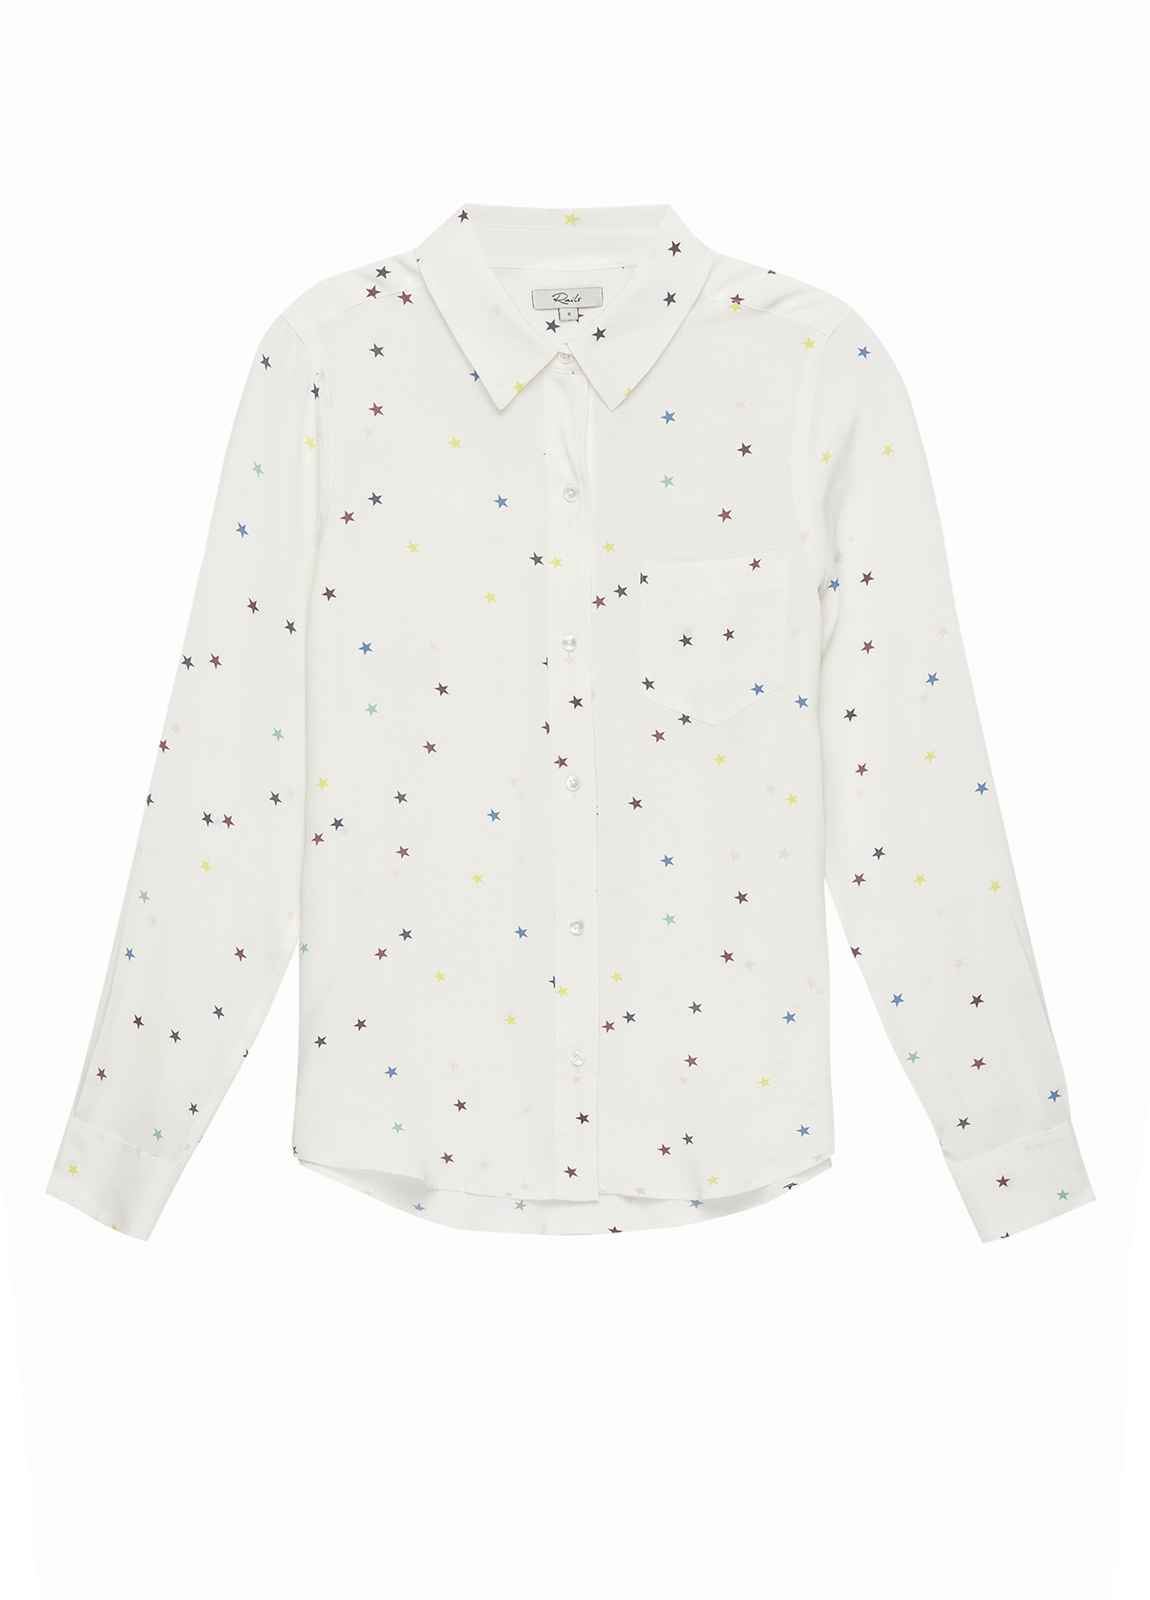 Camisa woman manga larga, color blanco estampado estrellas. 100% seda.